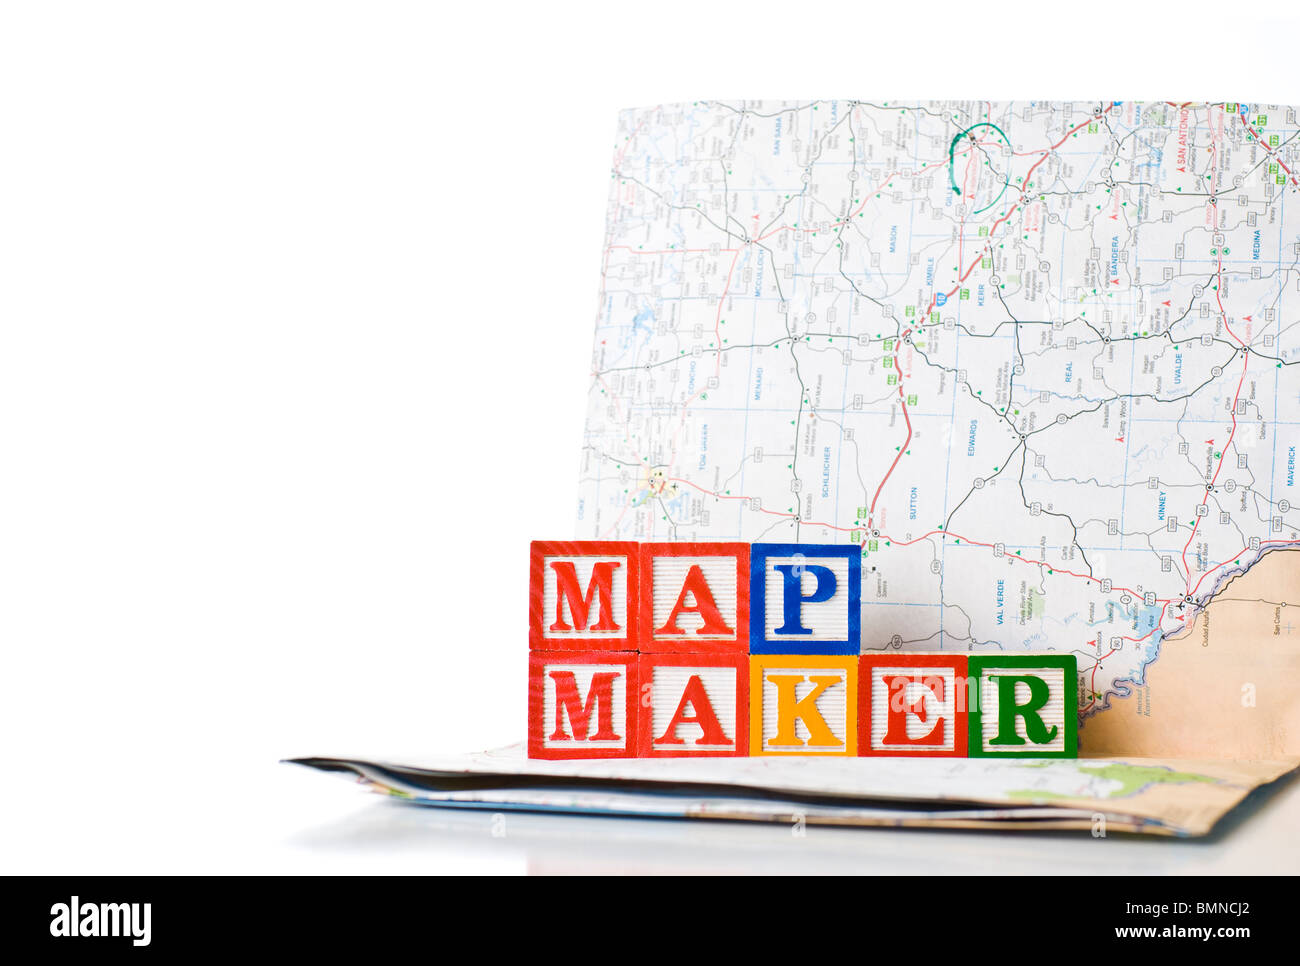 Colorful children's blocks spelling MAP MAKER with a map - Stock Image